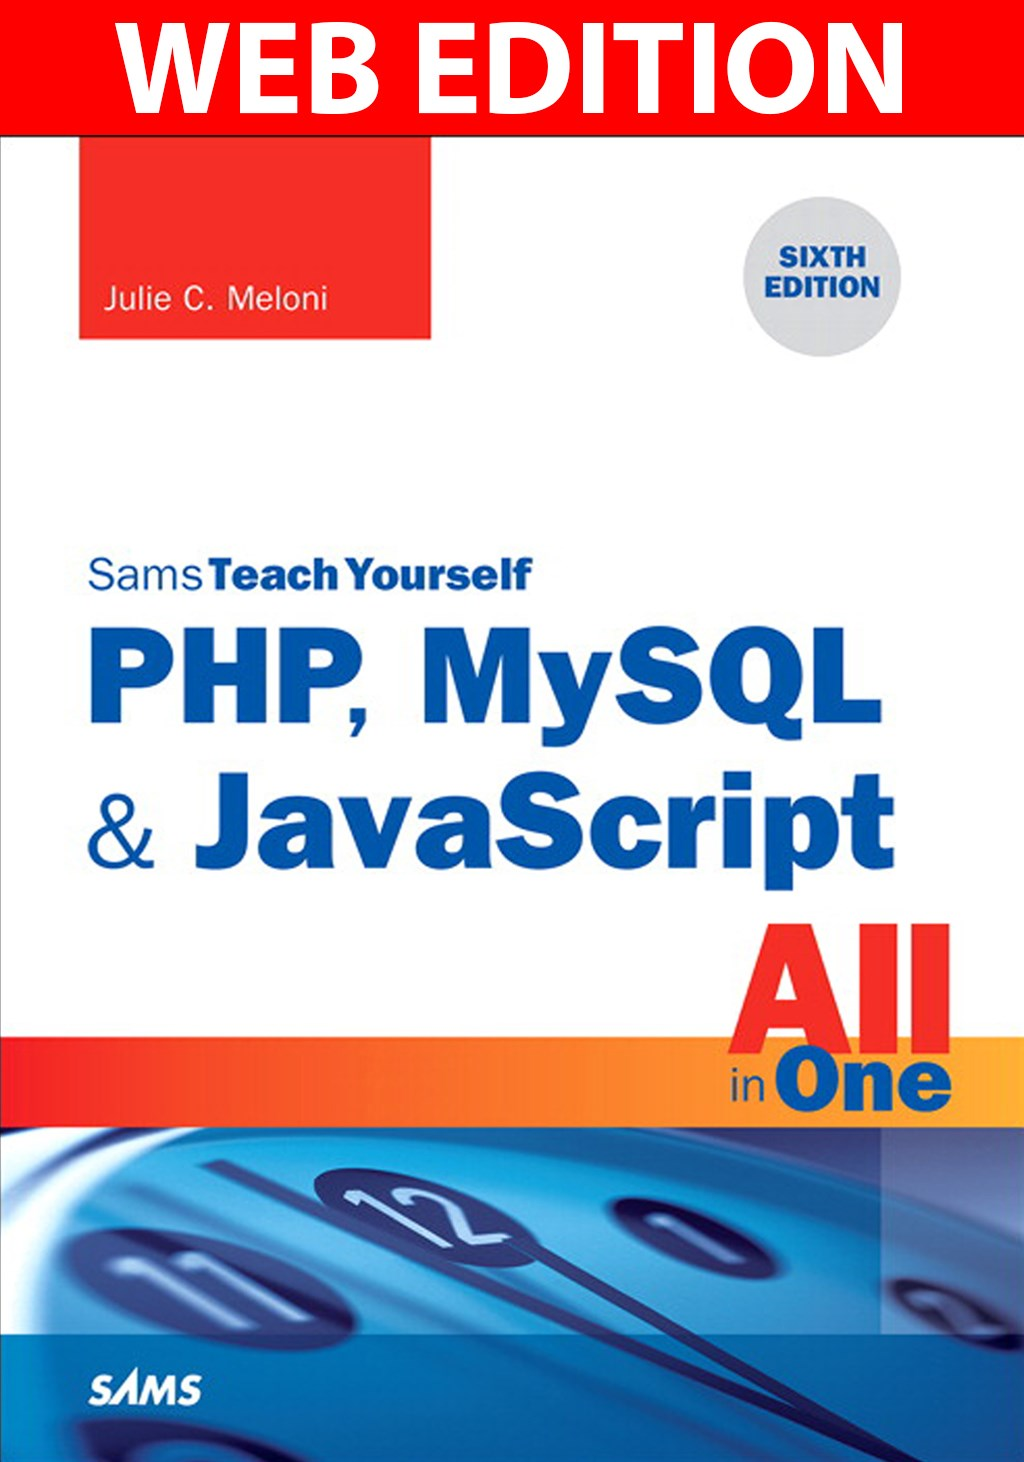 PHP, MySQL & JavaScript All in One, Sams Teach Yourself, Web Edition